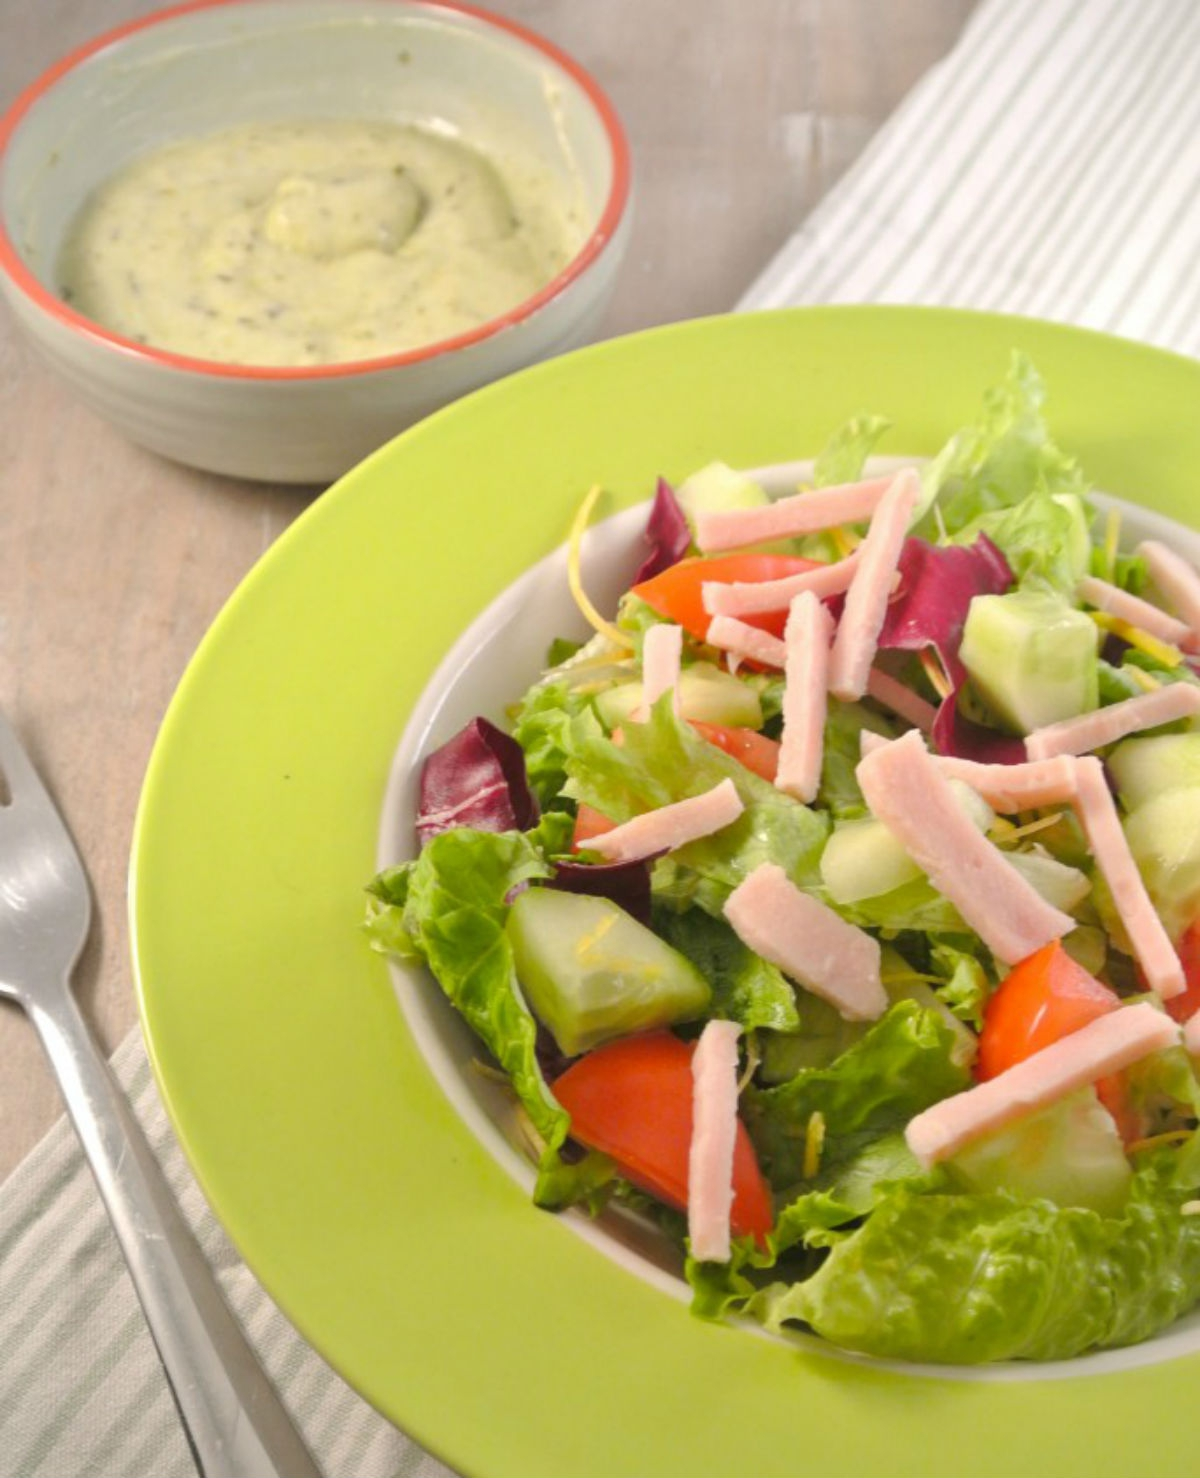 Salade met pesto en yoghurtdressing